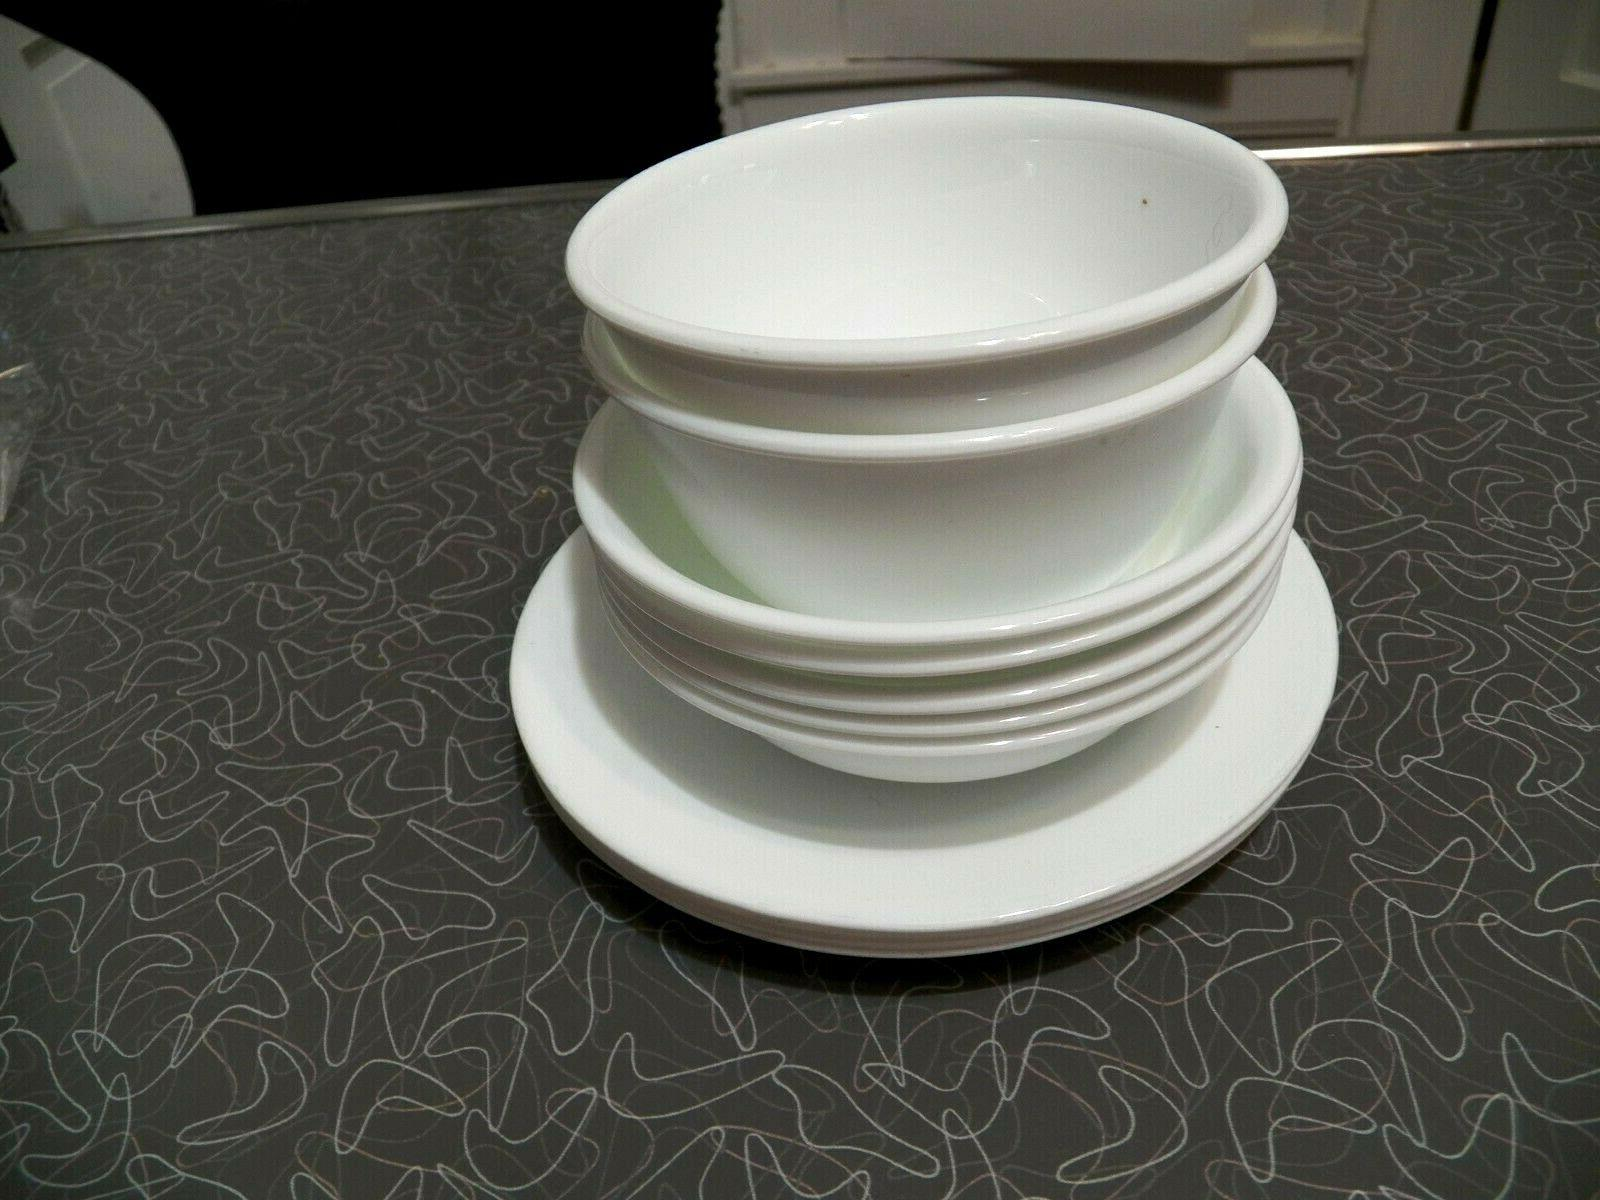 9 WINTER FROST CORELLE DINNERWARE SOUP/PASTA BOWLS COUPE